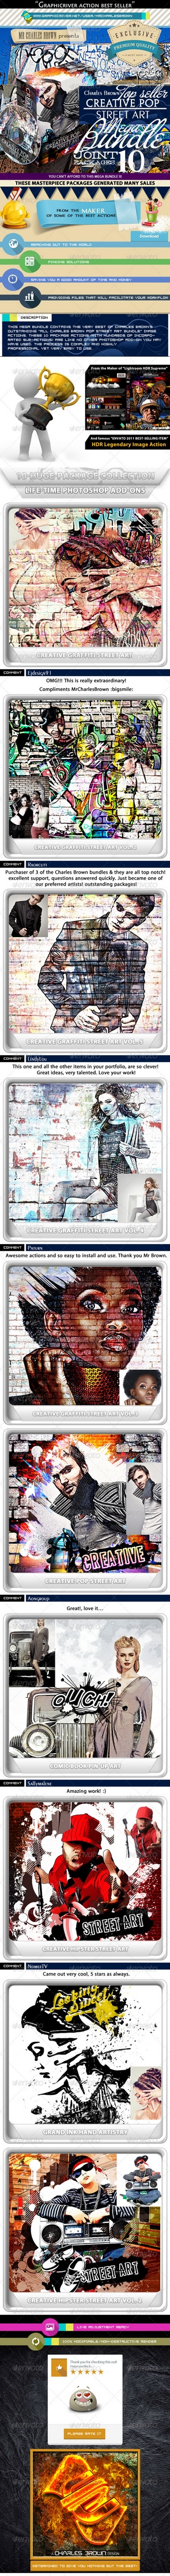 All Charles Brown's Pop Street Art Bundle.jpg